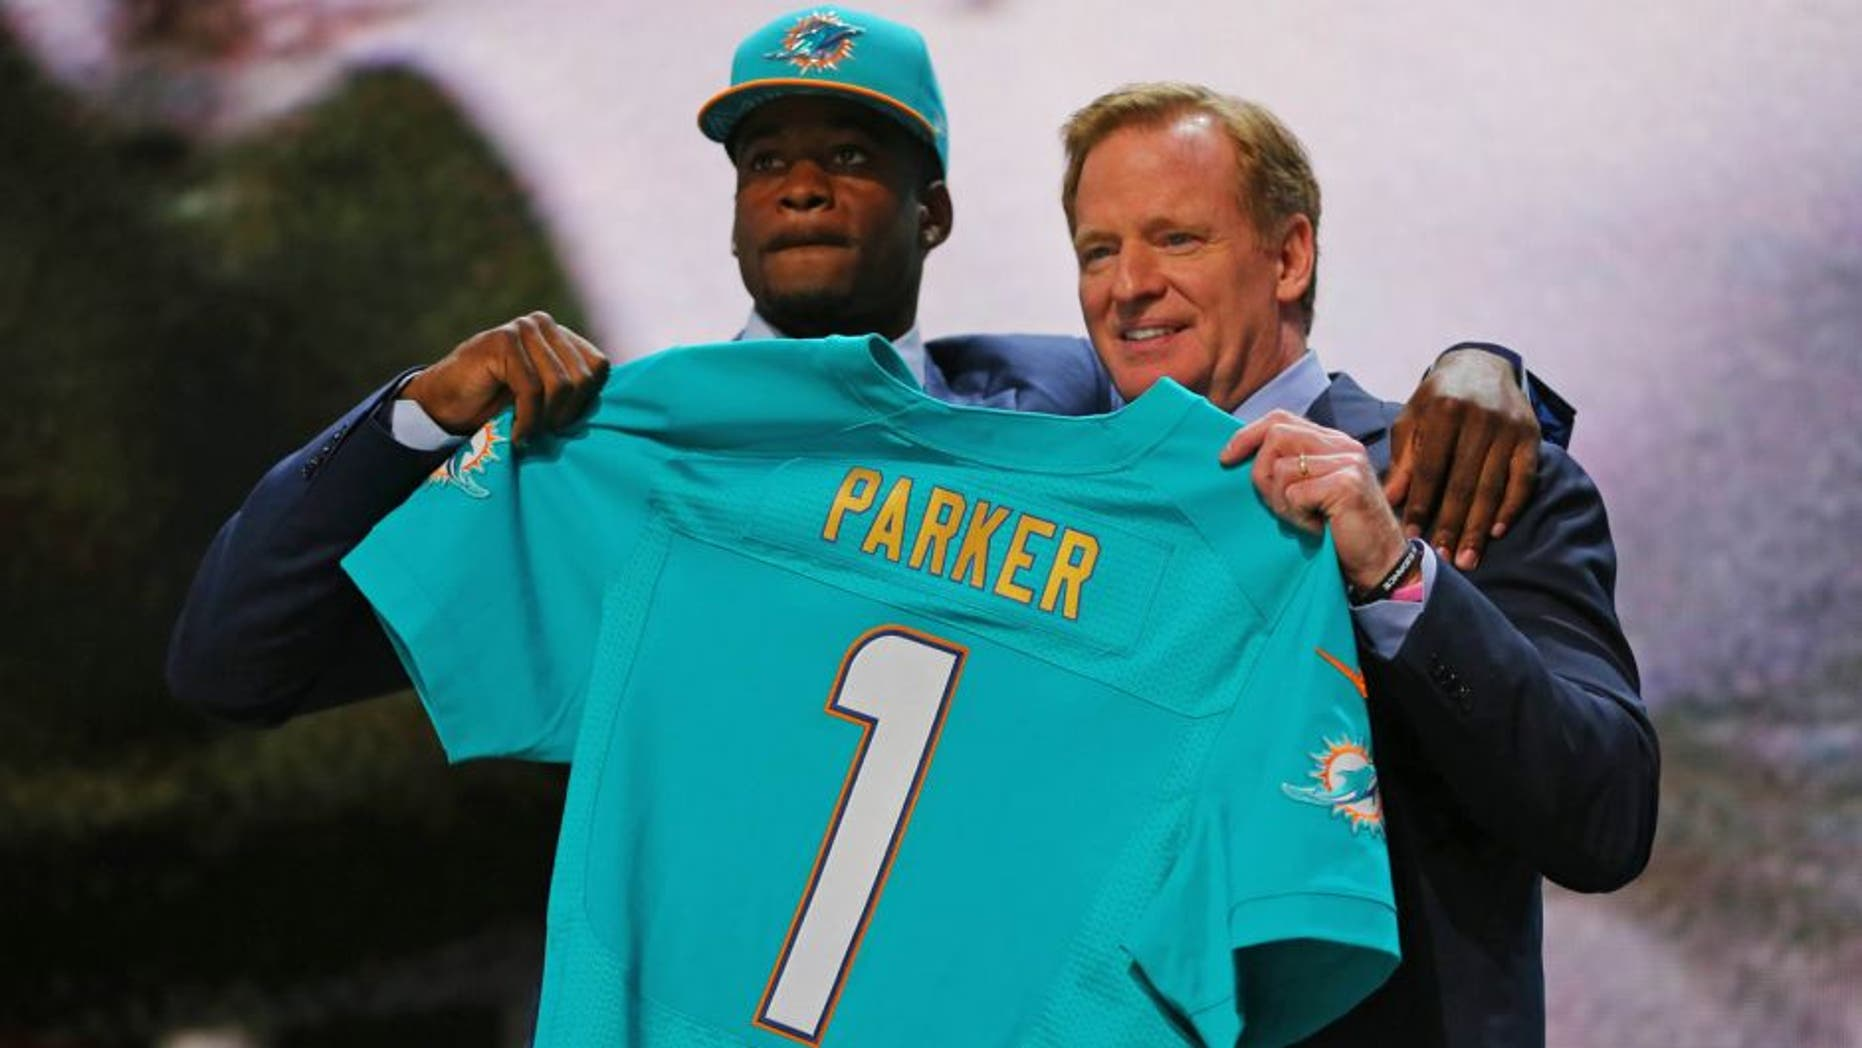 Apr 30, 2015; Chicago, IL, USA; DeVante Parker (Louisville) poses for a photo with NFL commissioner Roger Goodell after being selected as the number 14th overall pick to the Miami Dolphins in the first round of the 2015 NFL Draft at the Auditorium Theatre of Roosevelt University. Mandatory Credit: Dennis Wierzbicki-USA TODAY Sports